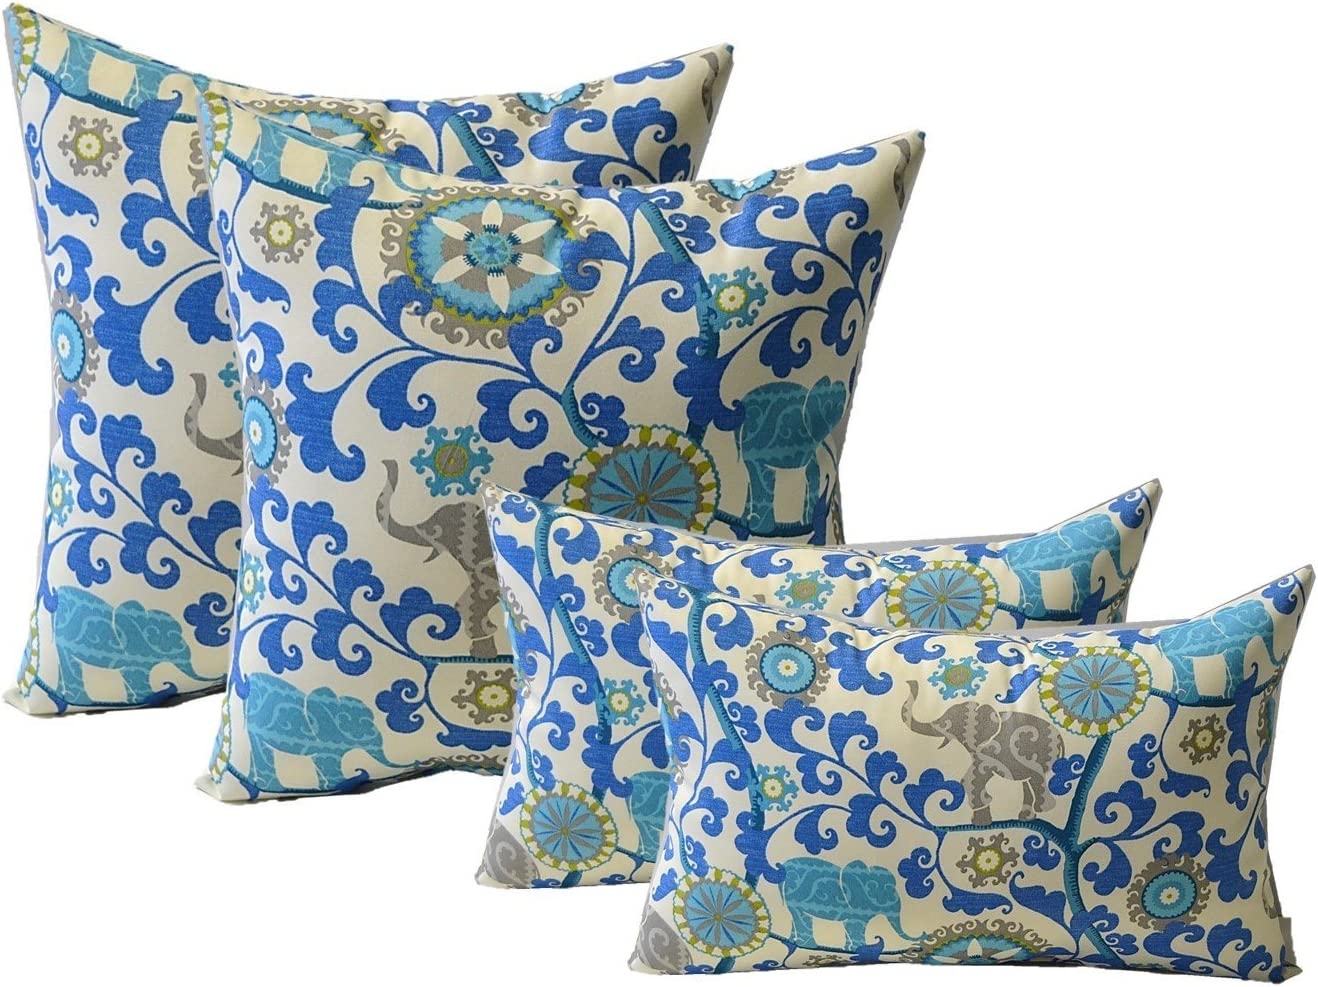 Set of 4 Indoor Outdoor Pillows Square Throw R - Atlanta Mall Very popular 20